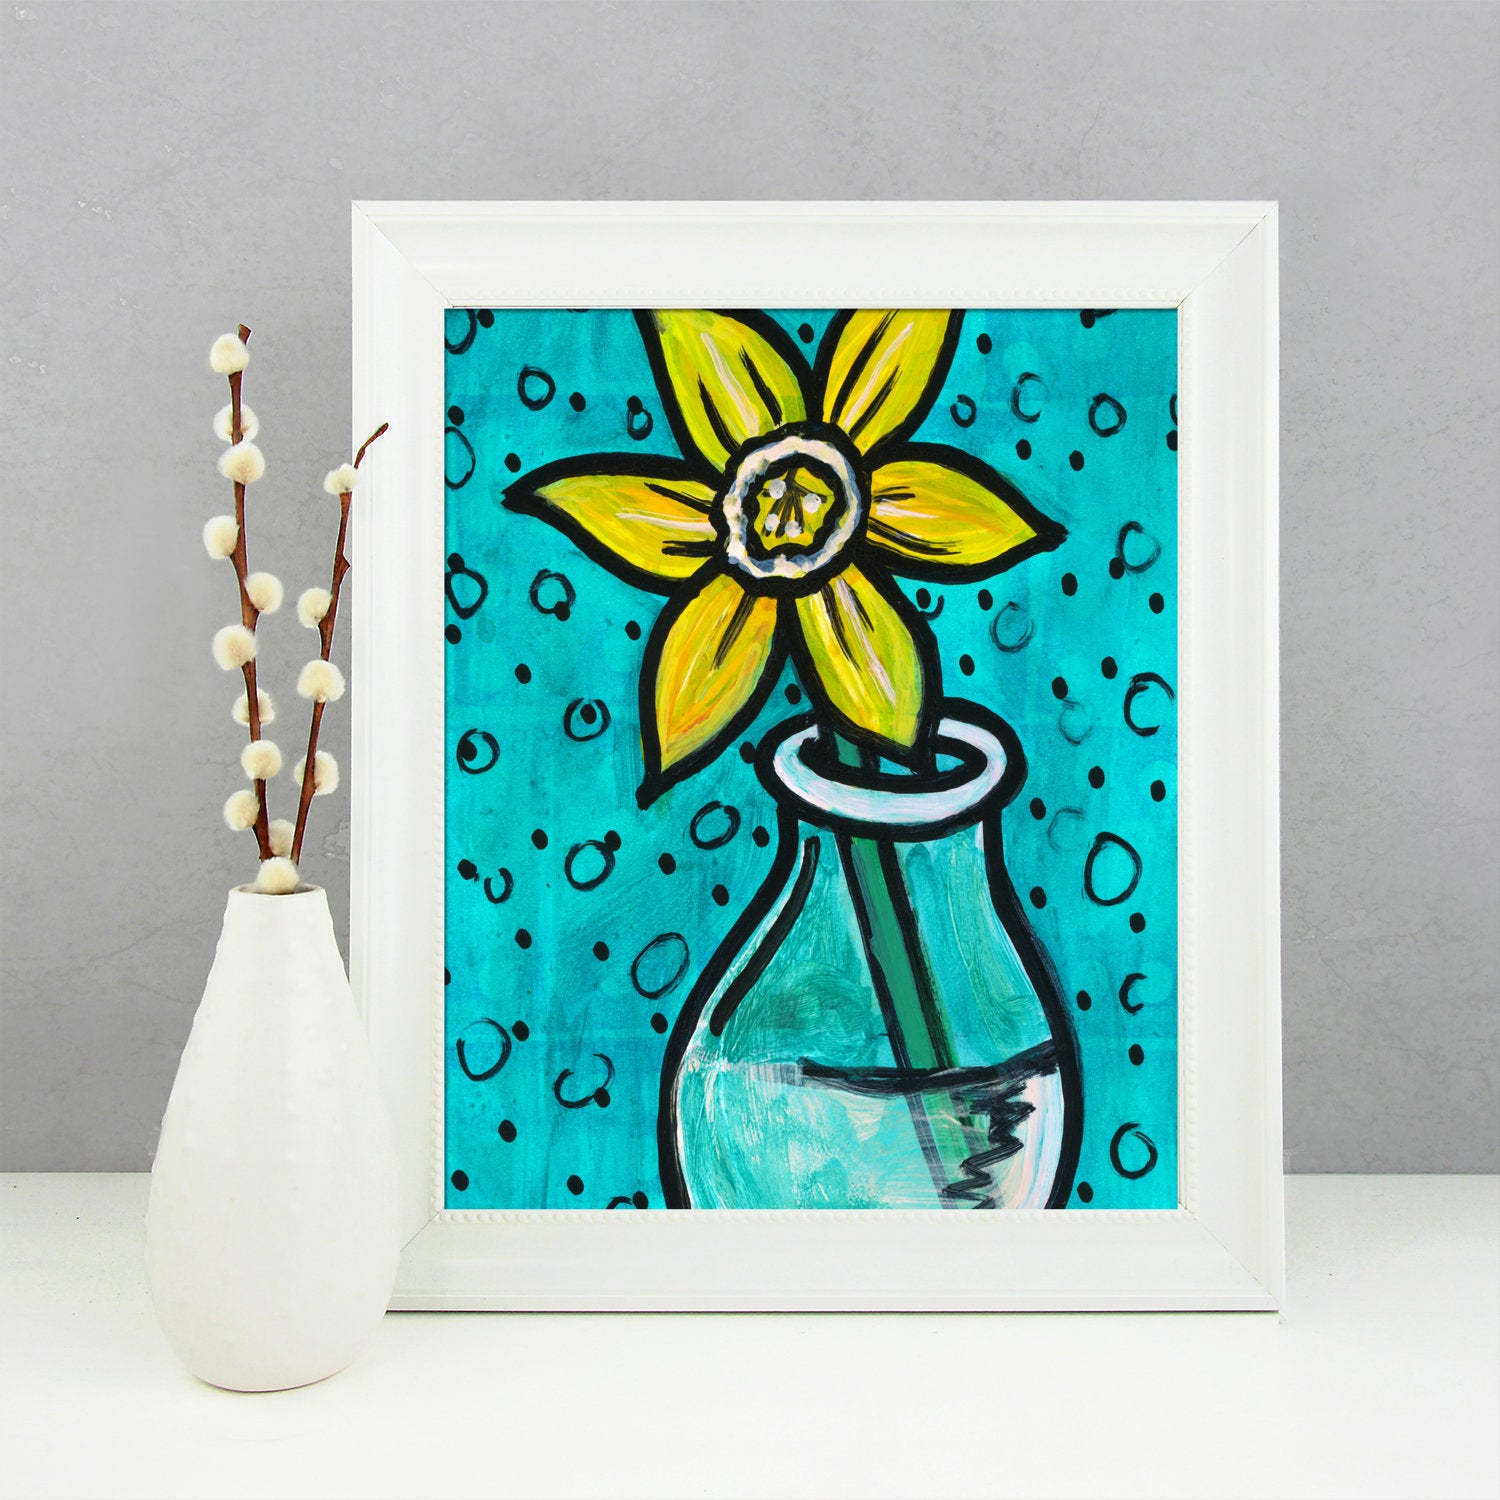 Yellow Daffodil Print - Flower Giclee Print for Bedroom, Bathroom or Living Room